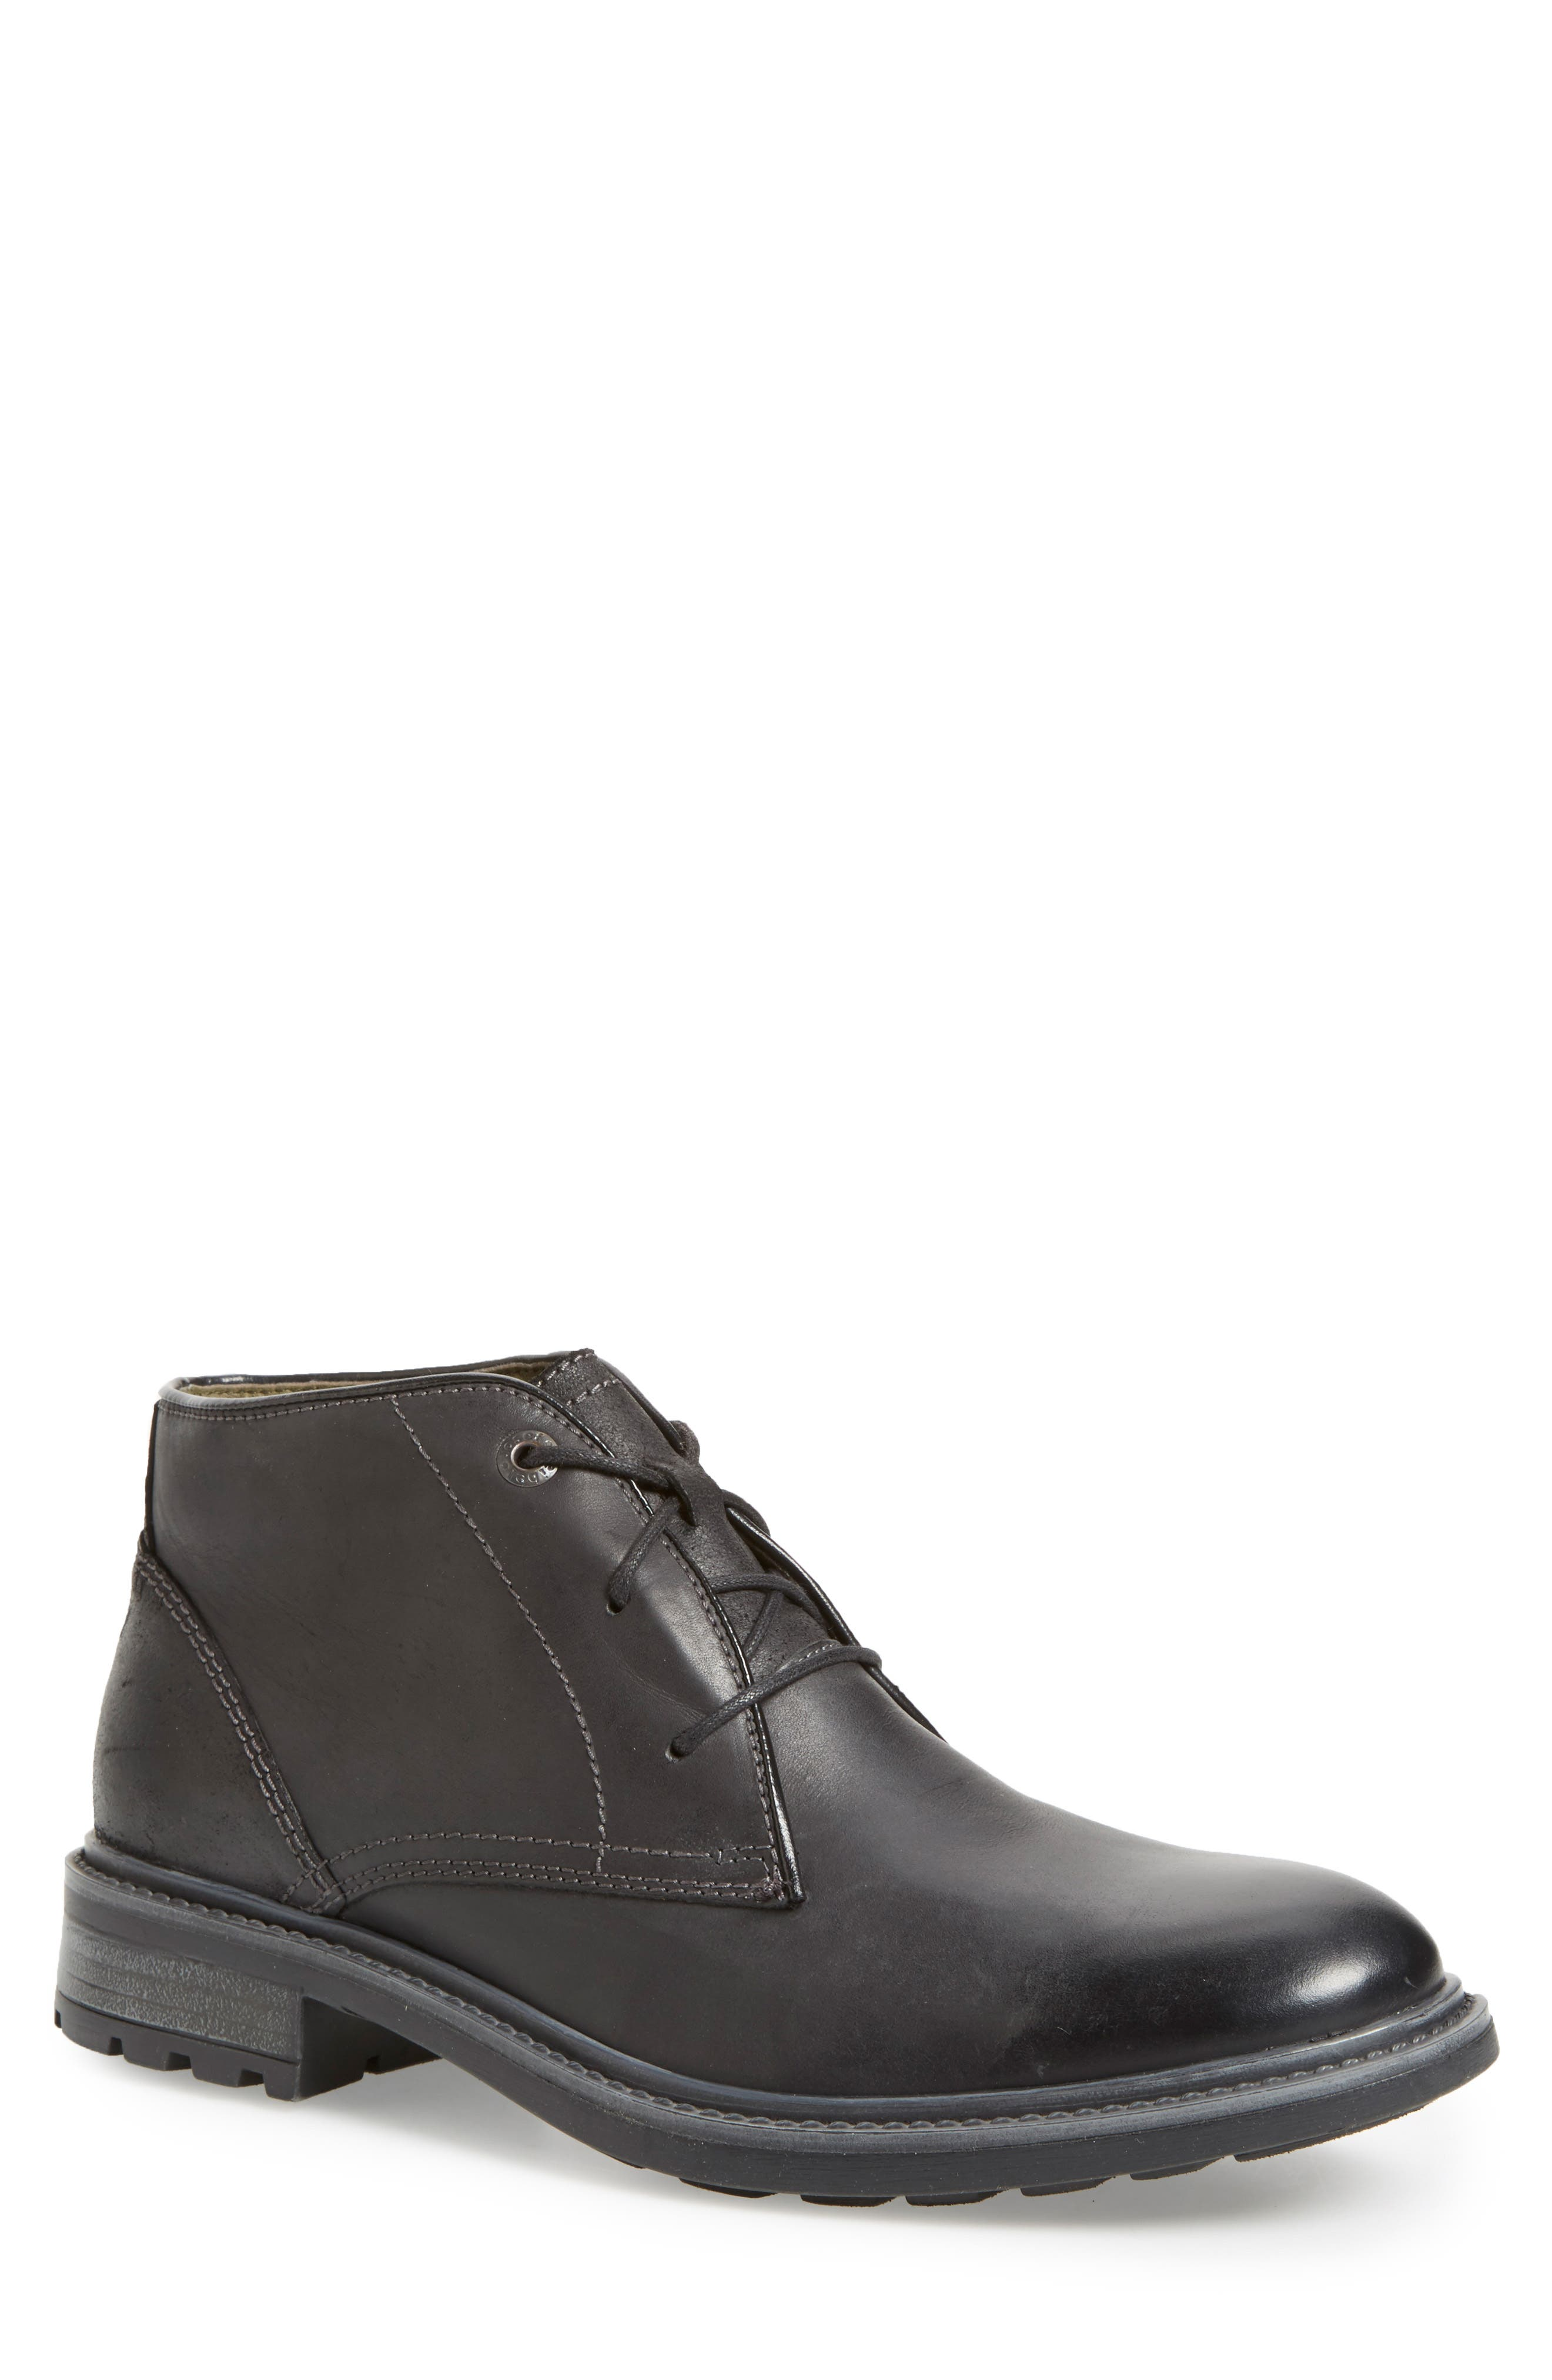 'Oscar 11' Chukka Boot,                             Alternate thumbnail 2, color,                             BLACK